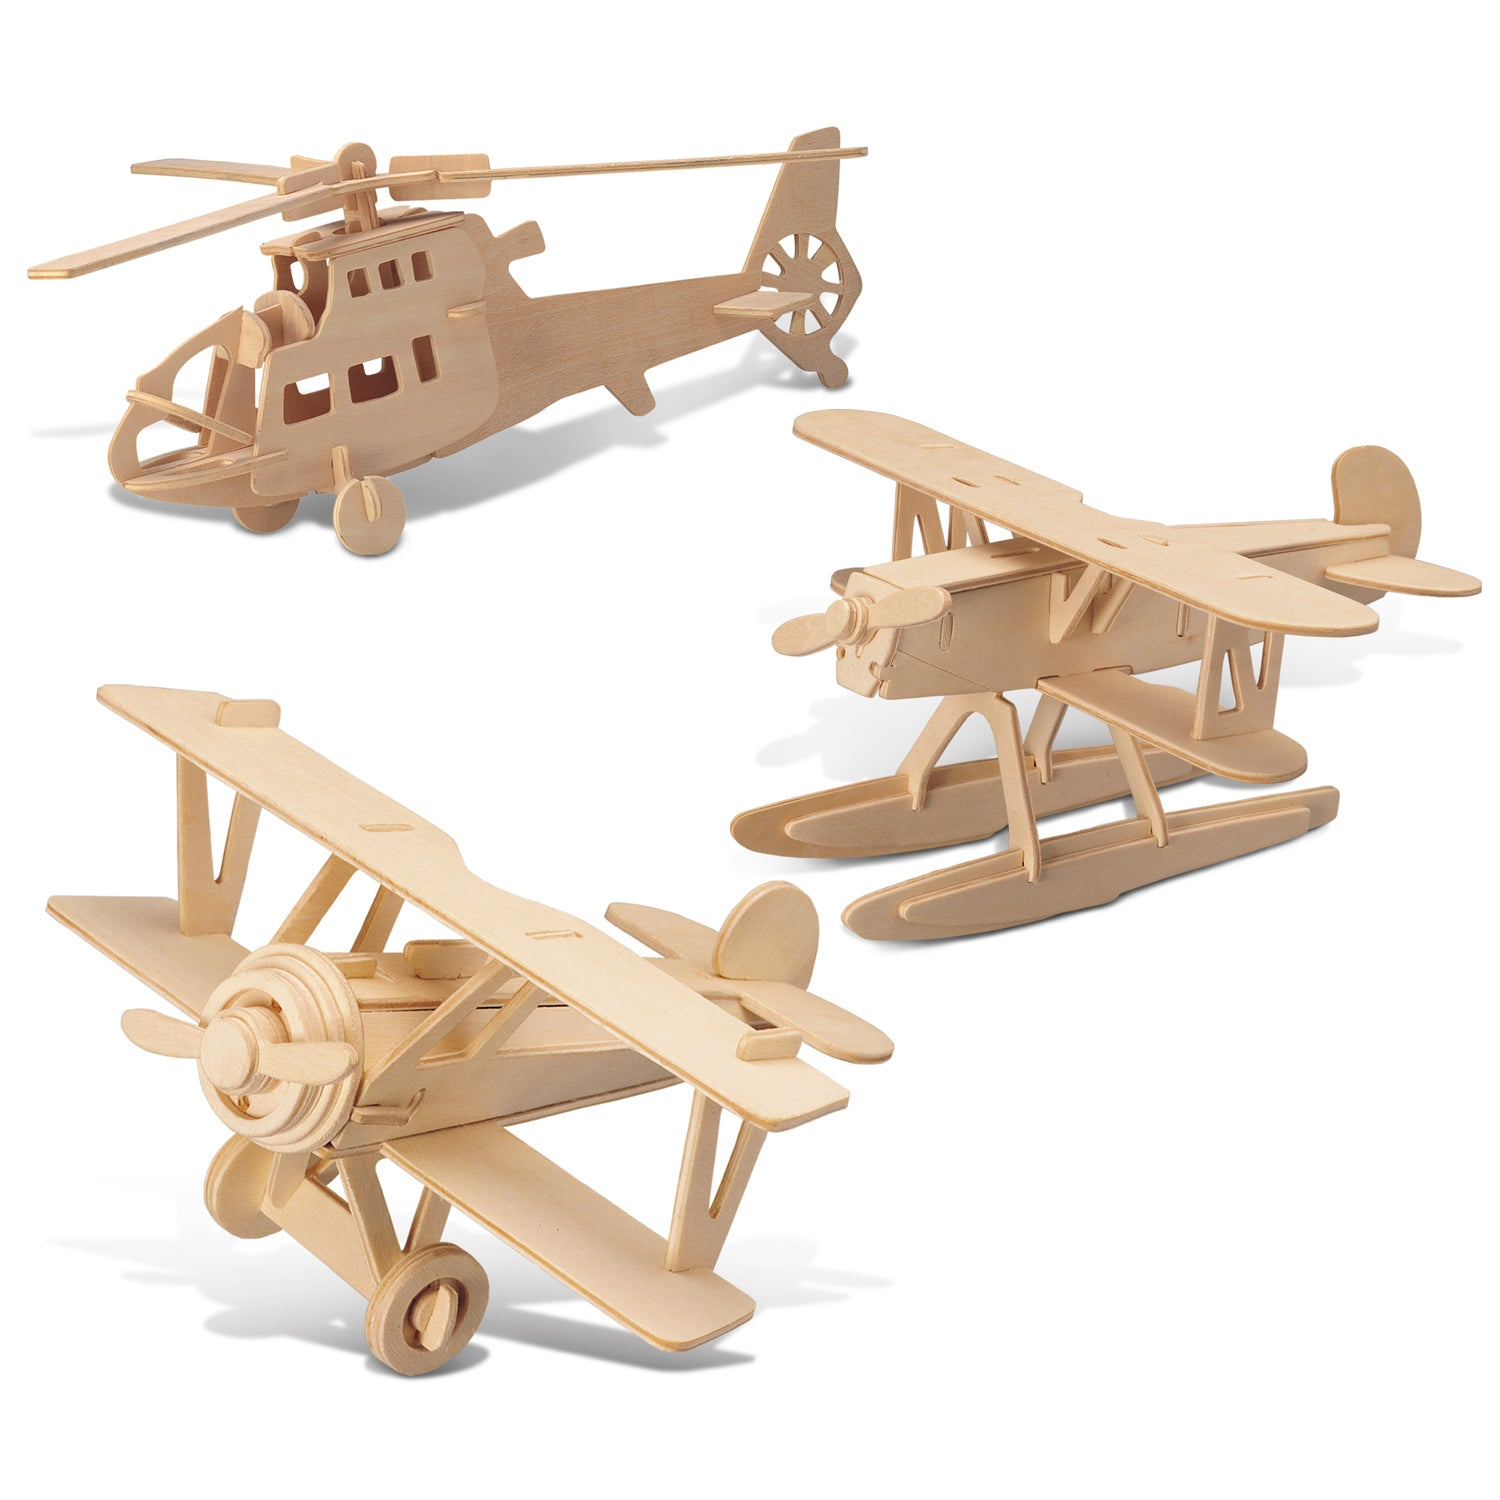 Puzzled Water Plane, Chopper, and Nieuport 17 Wooden 3D P...